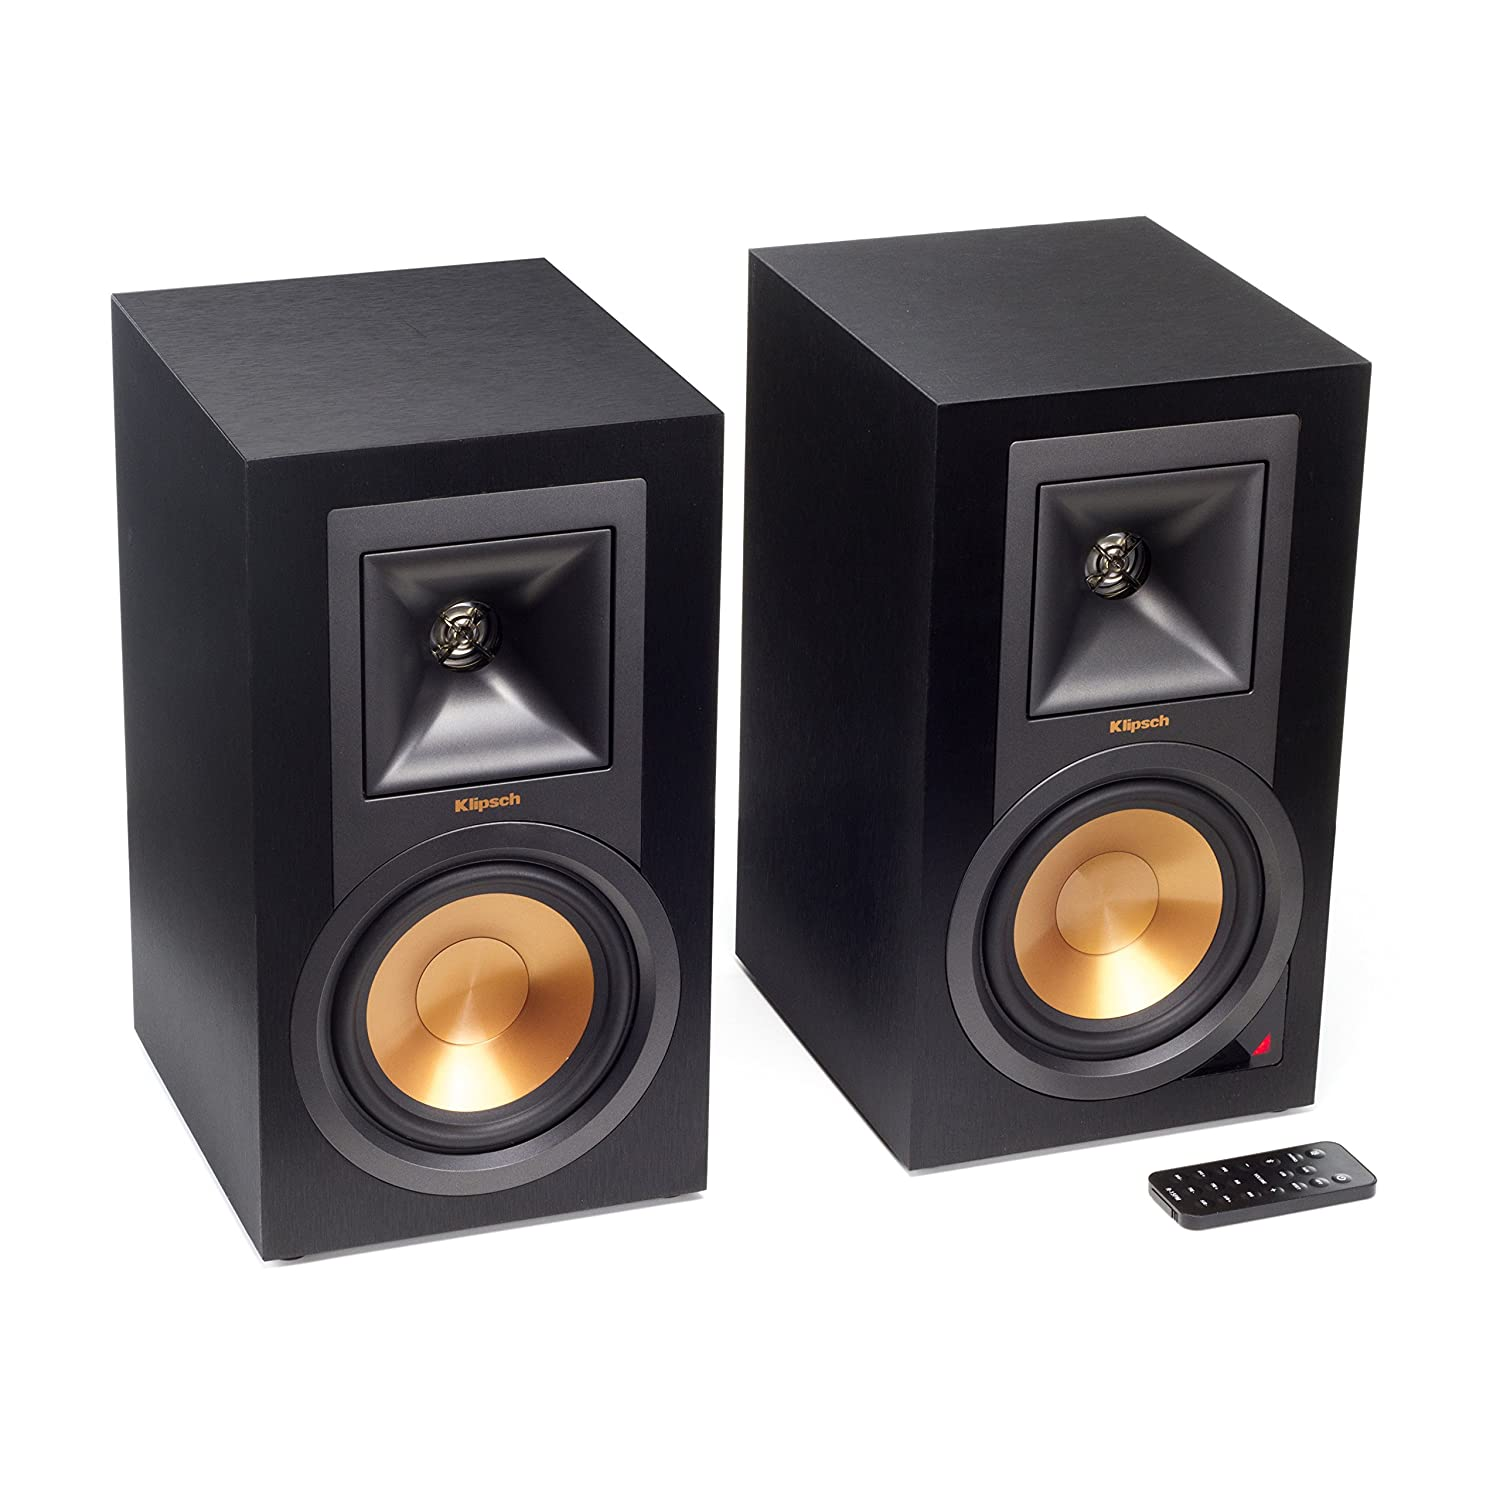 klipsch old speakers. amazon.com: klipsch r-15pm powered monitor - black (pair): home audio \u0026 theater old speakers